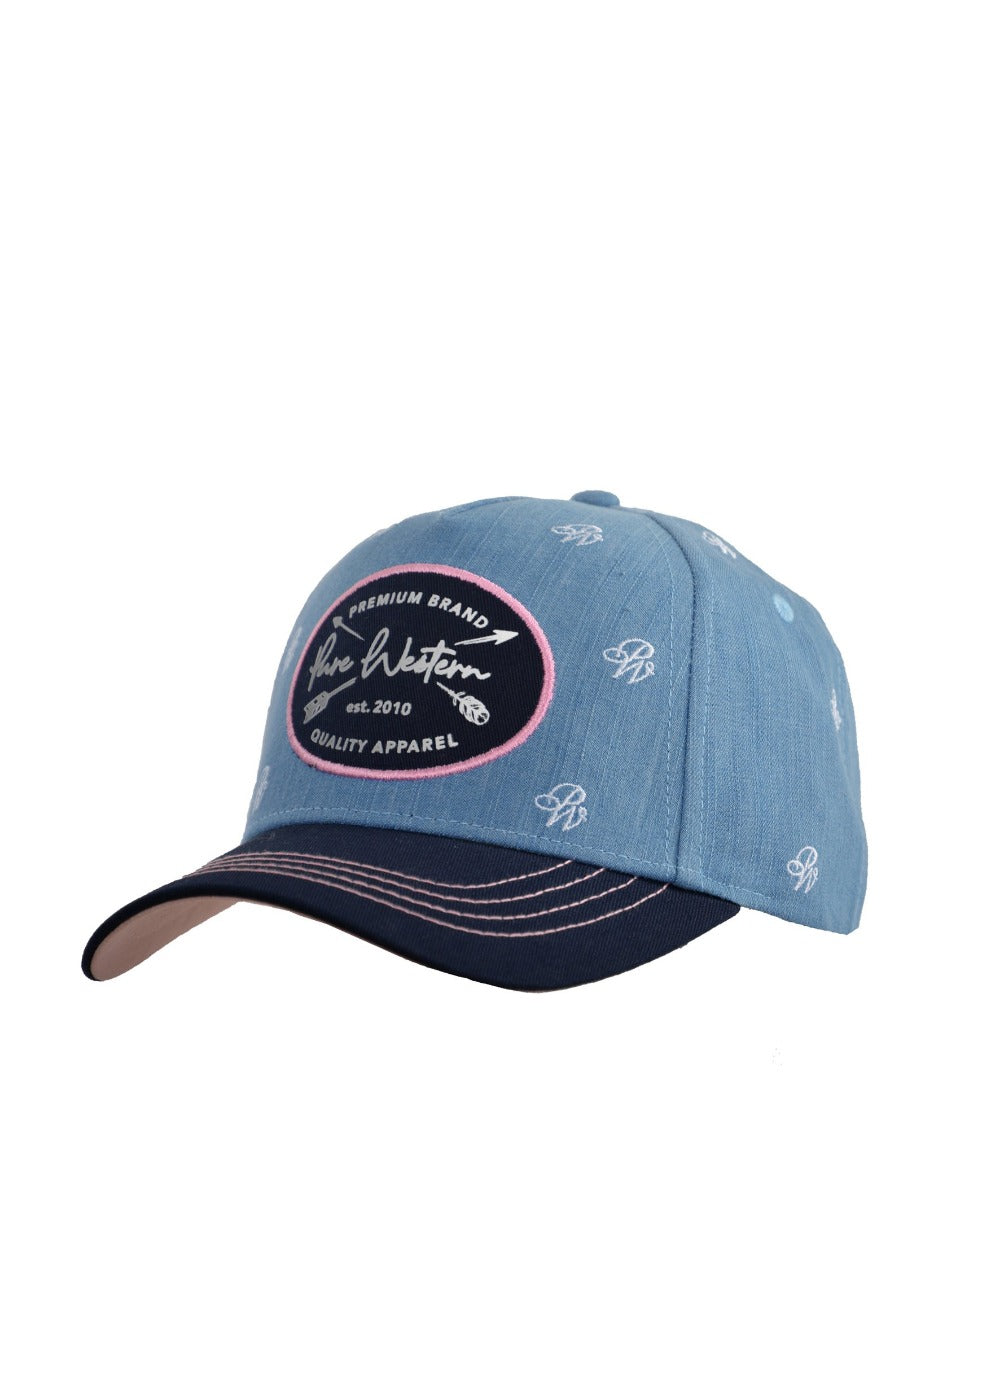 Pure Western Womens Pixie Cap